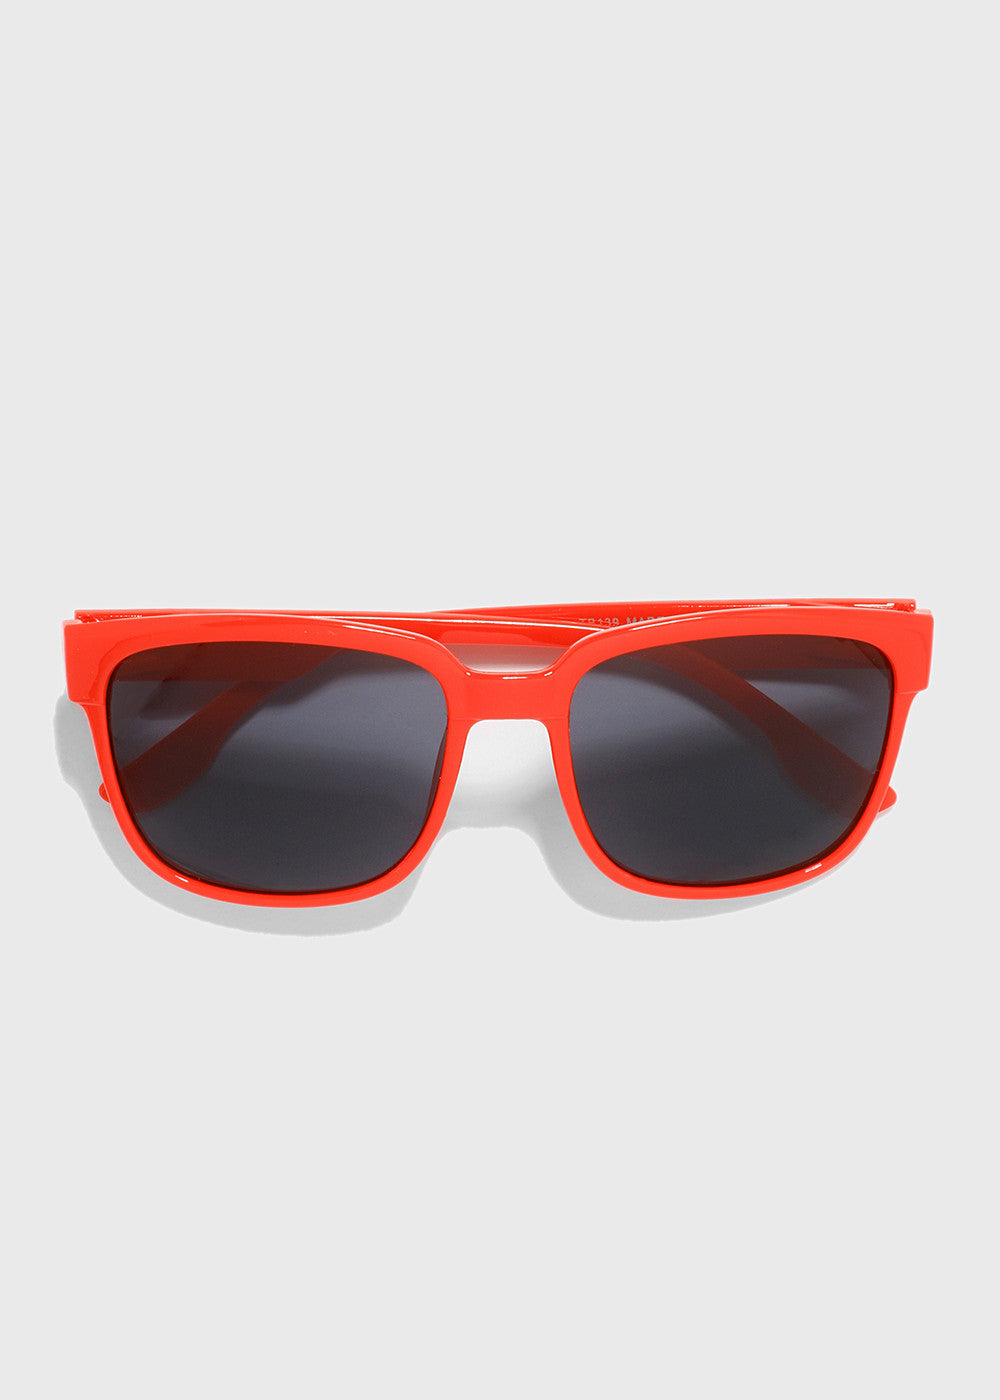 Chic Square Sunglasses- Red